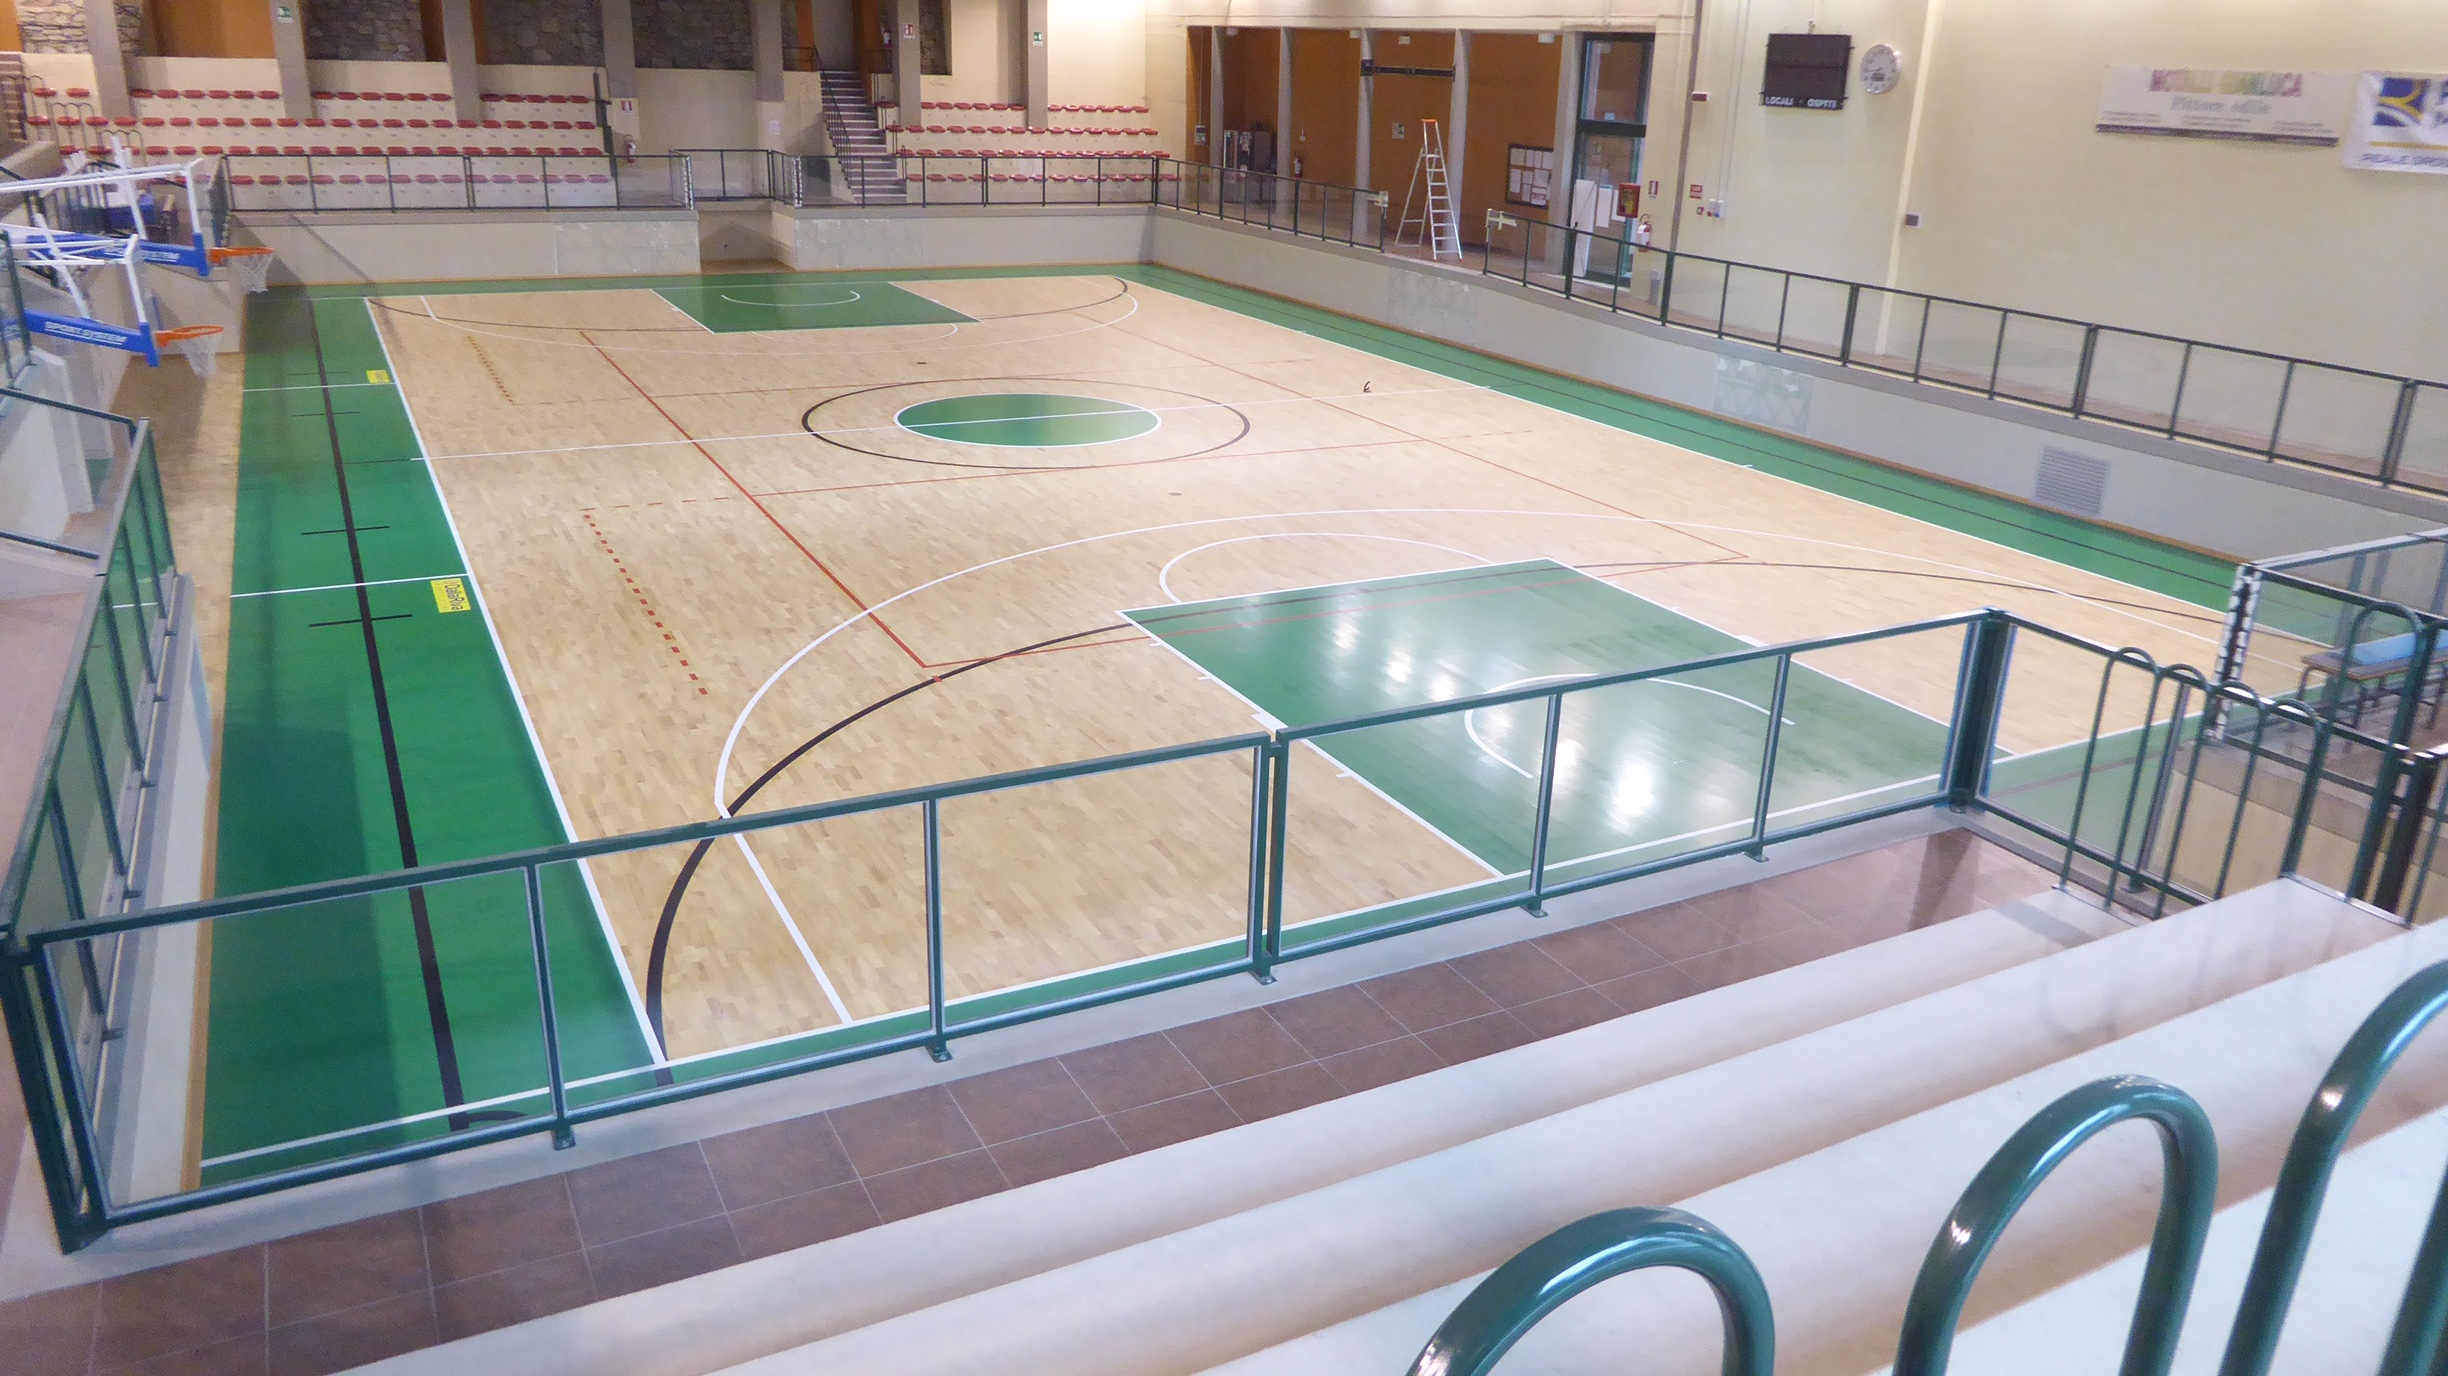 The FIBA approved sports flooring